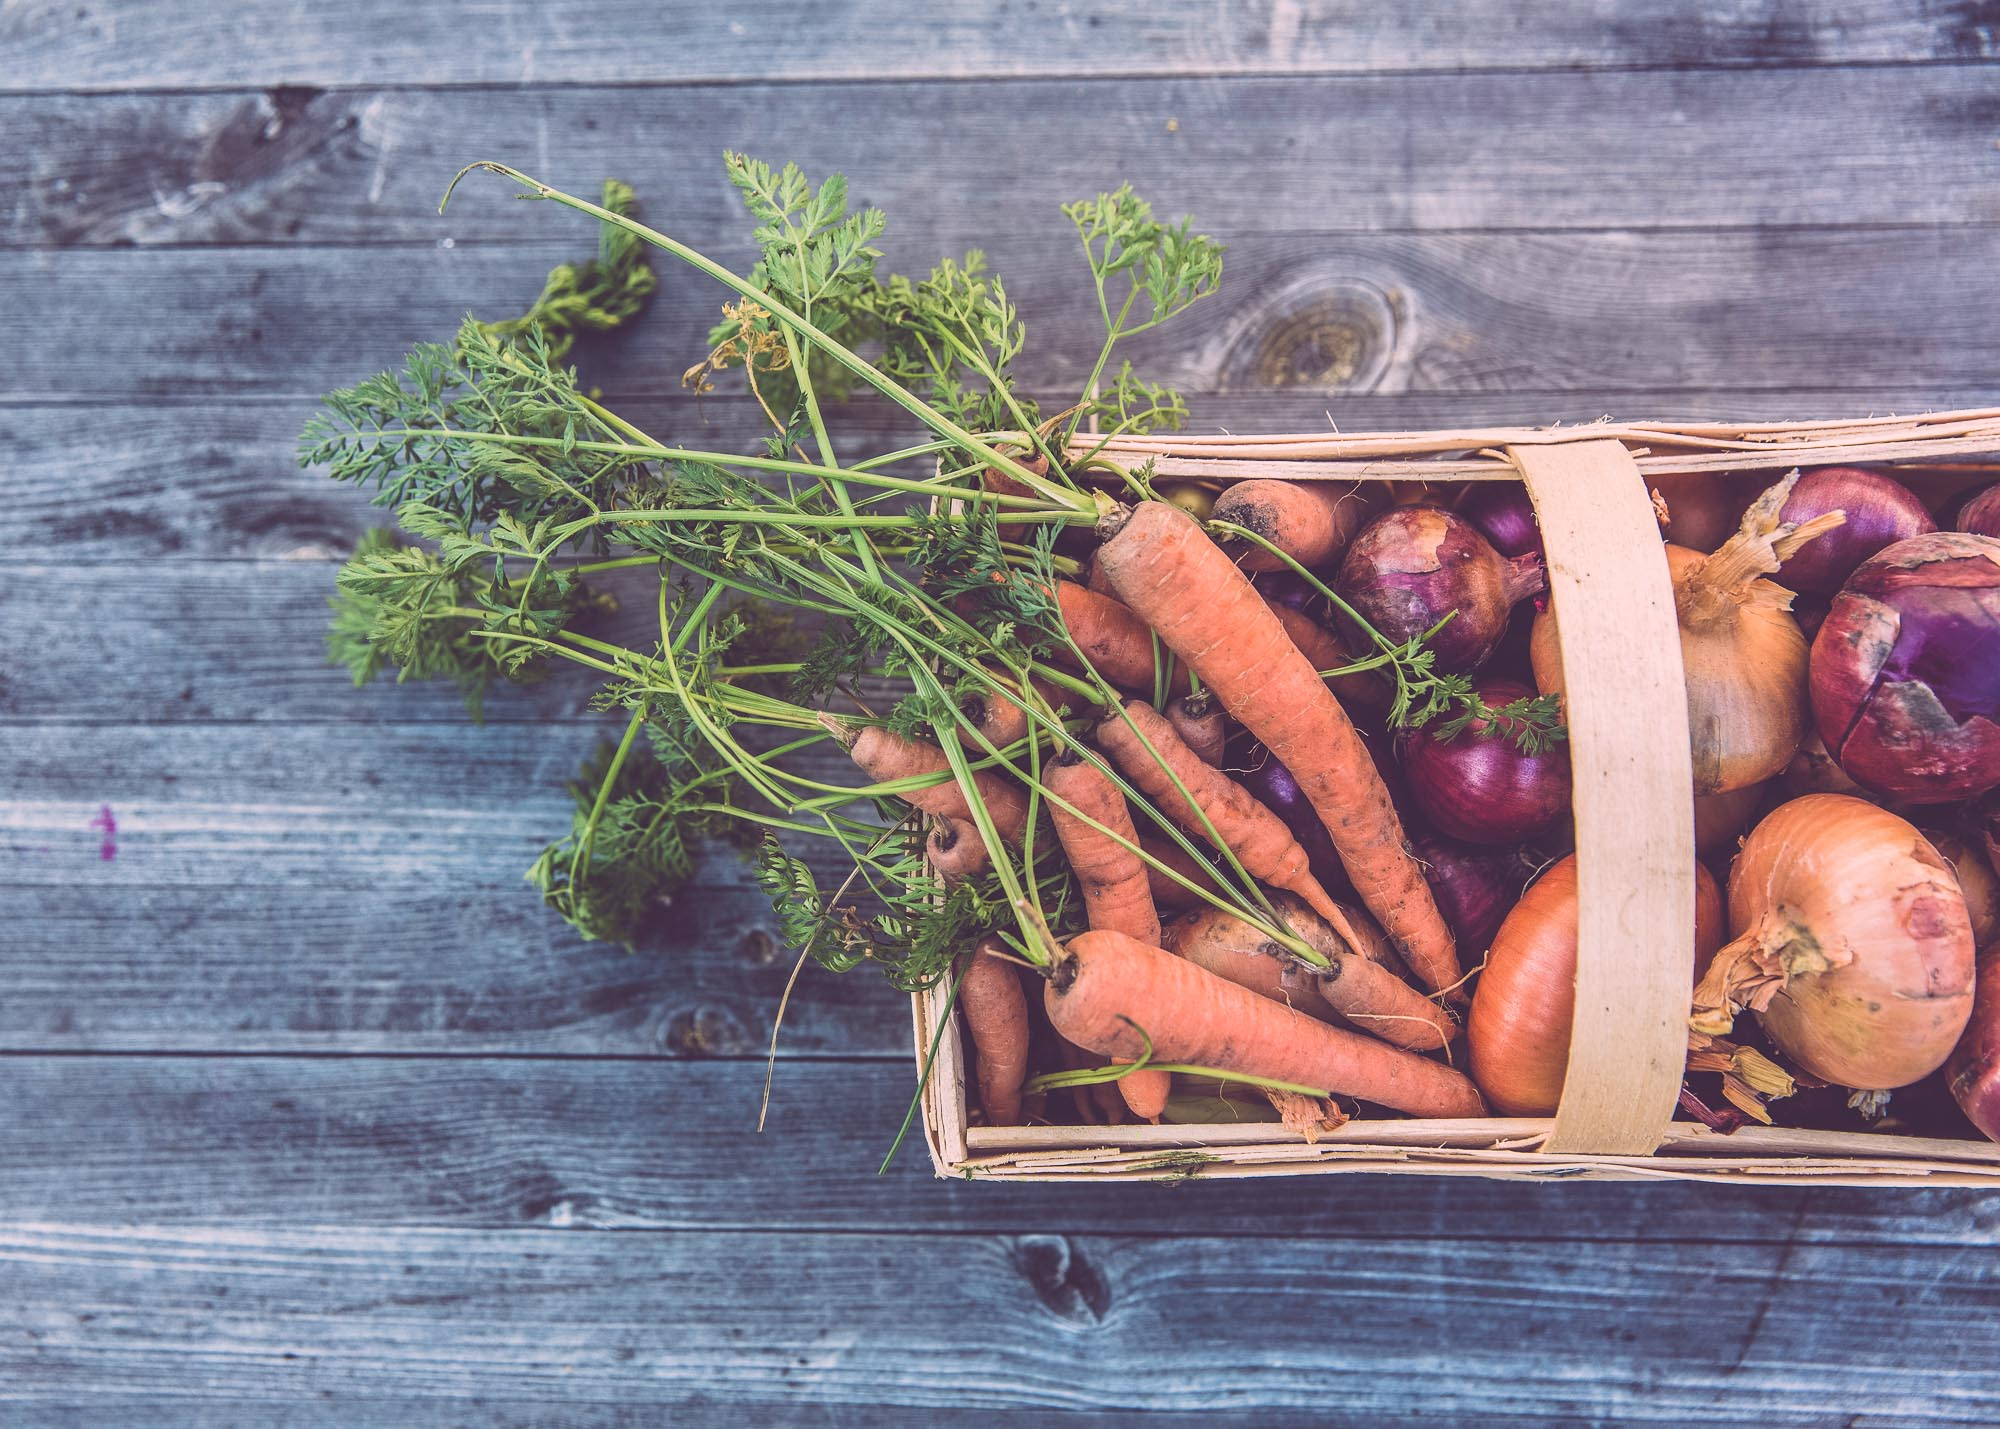 vegetable box with carrots and onions on wooden table